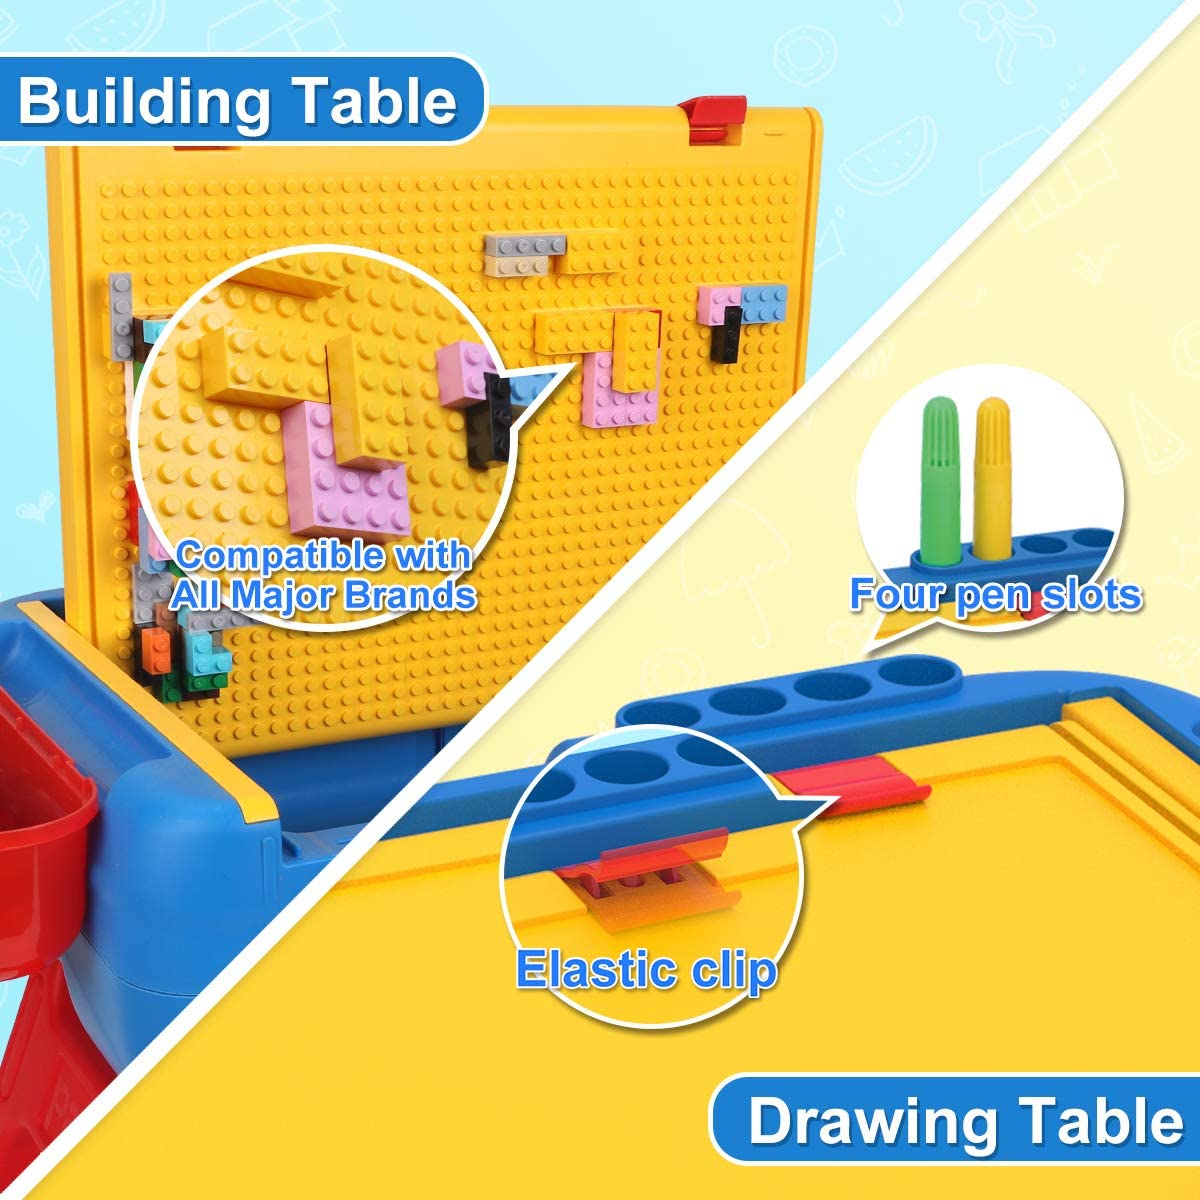 PANLOS Kids Activity Table Set-3 in 1 Luggage Learning Table and Building Brick Table with Storage Tight Fit and Compatible with All Major Brands for Kids 6 Years Old or Older